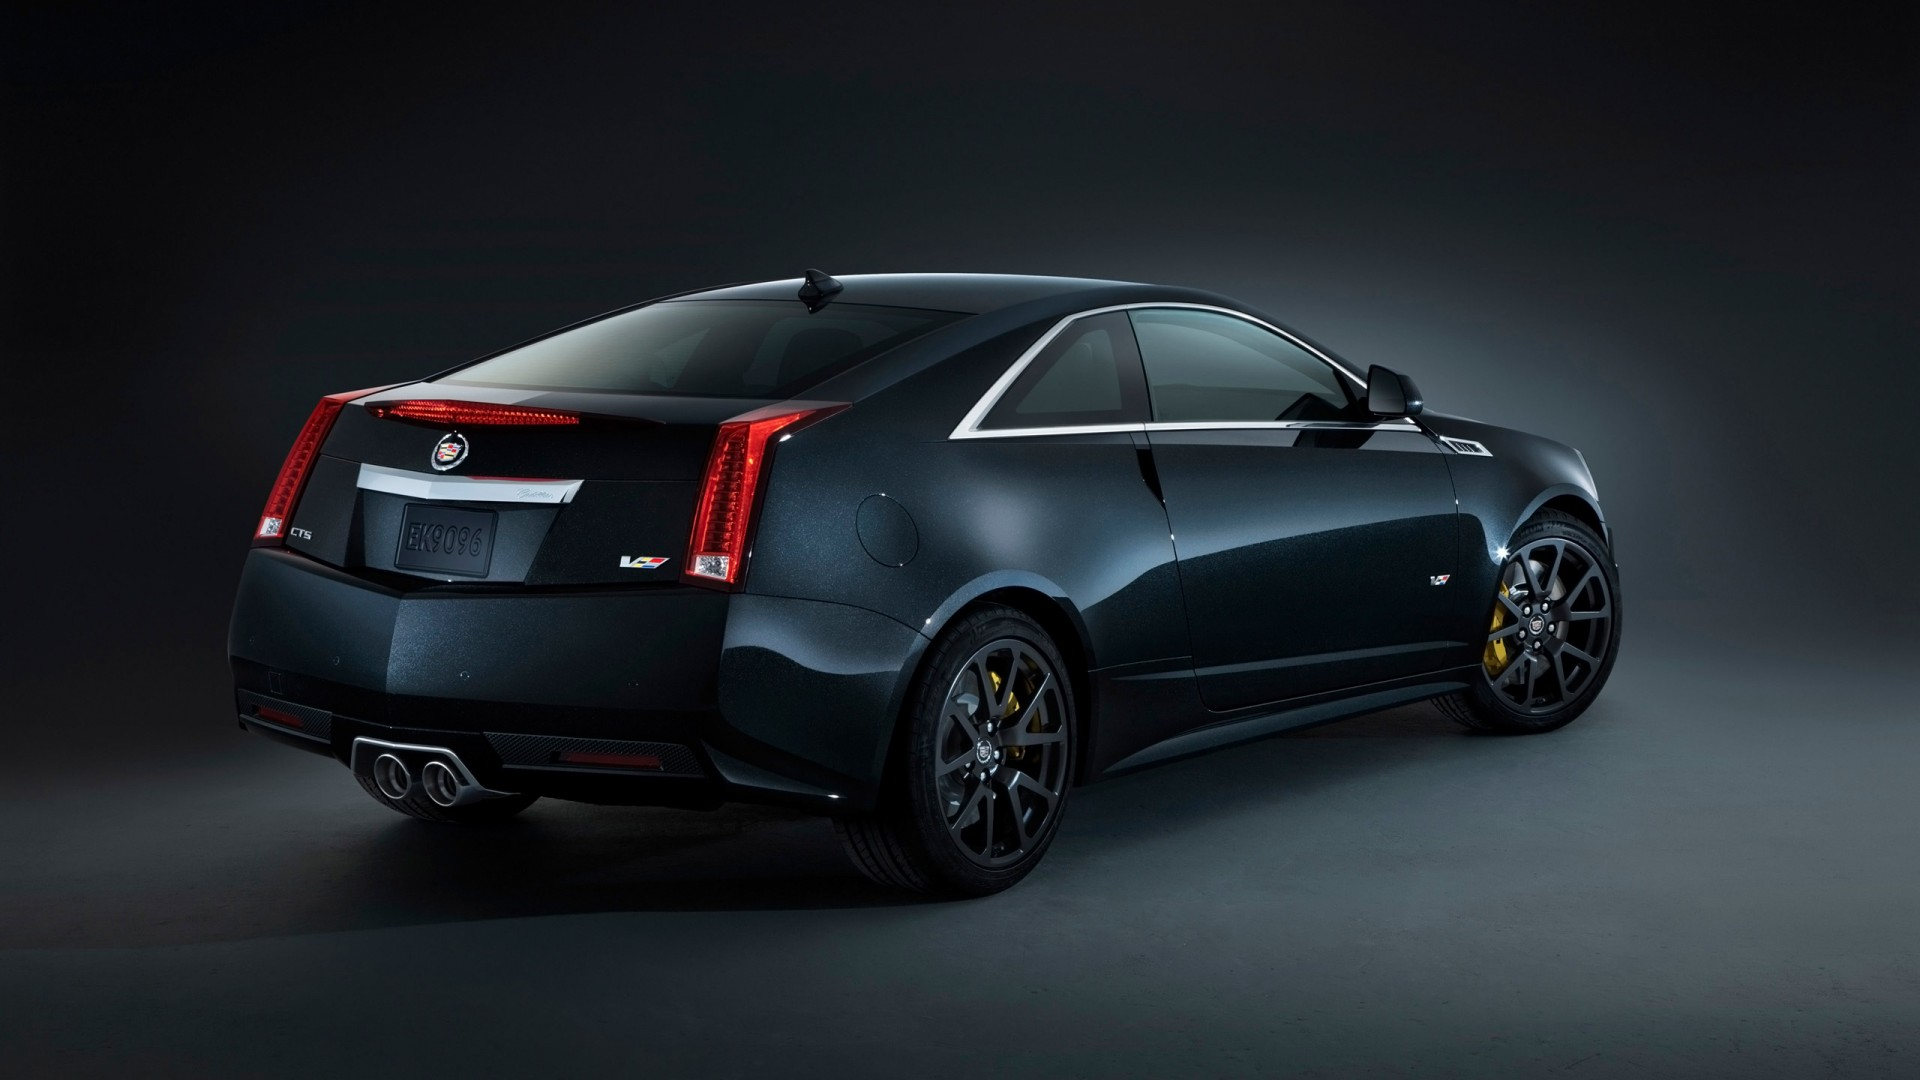 2014 cadillac cts v coupe 2 wallpaper hd car wallpapers. Cars Review. Best American Auto & Cars Review